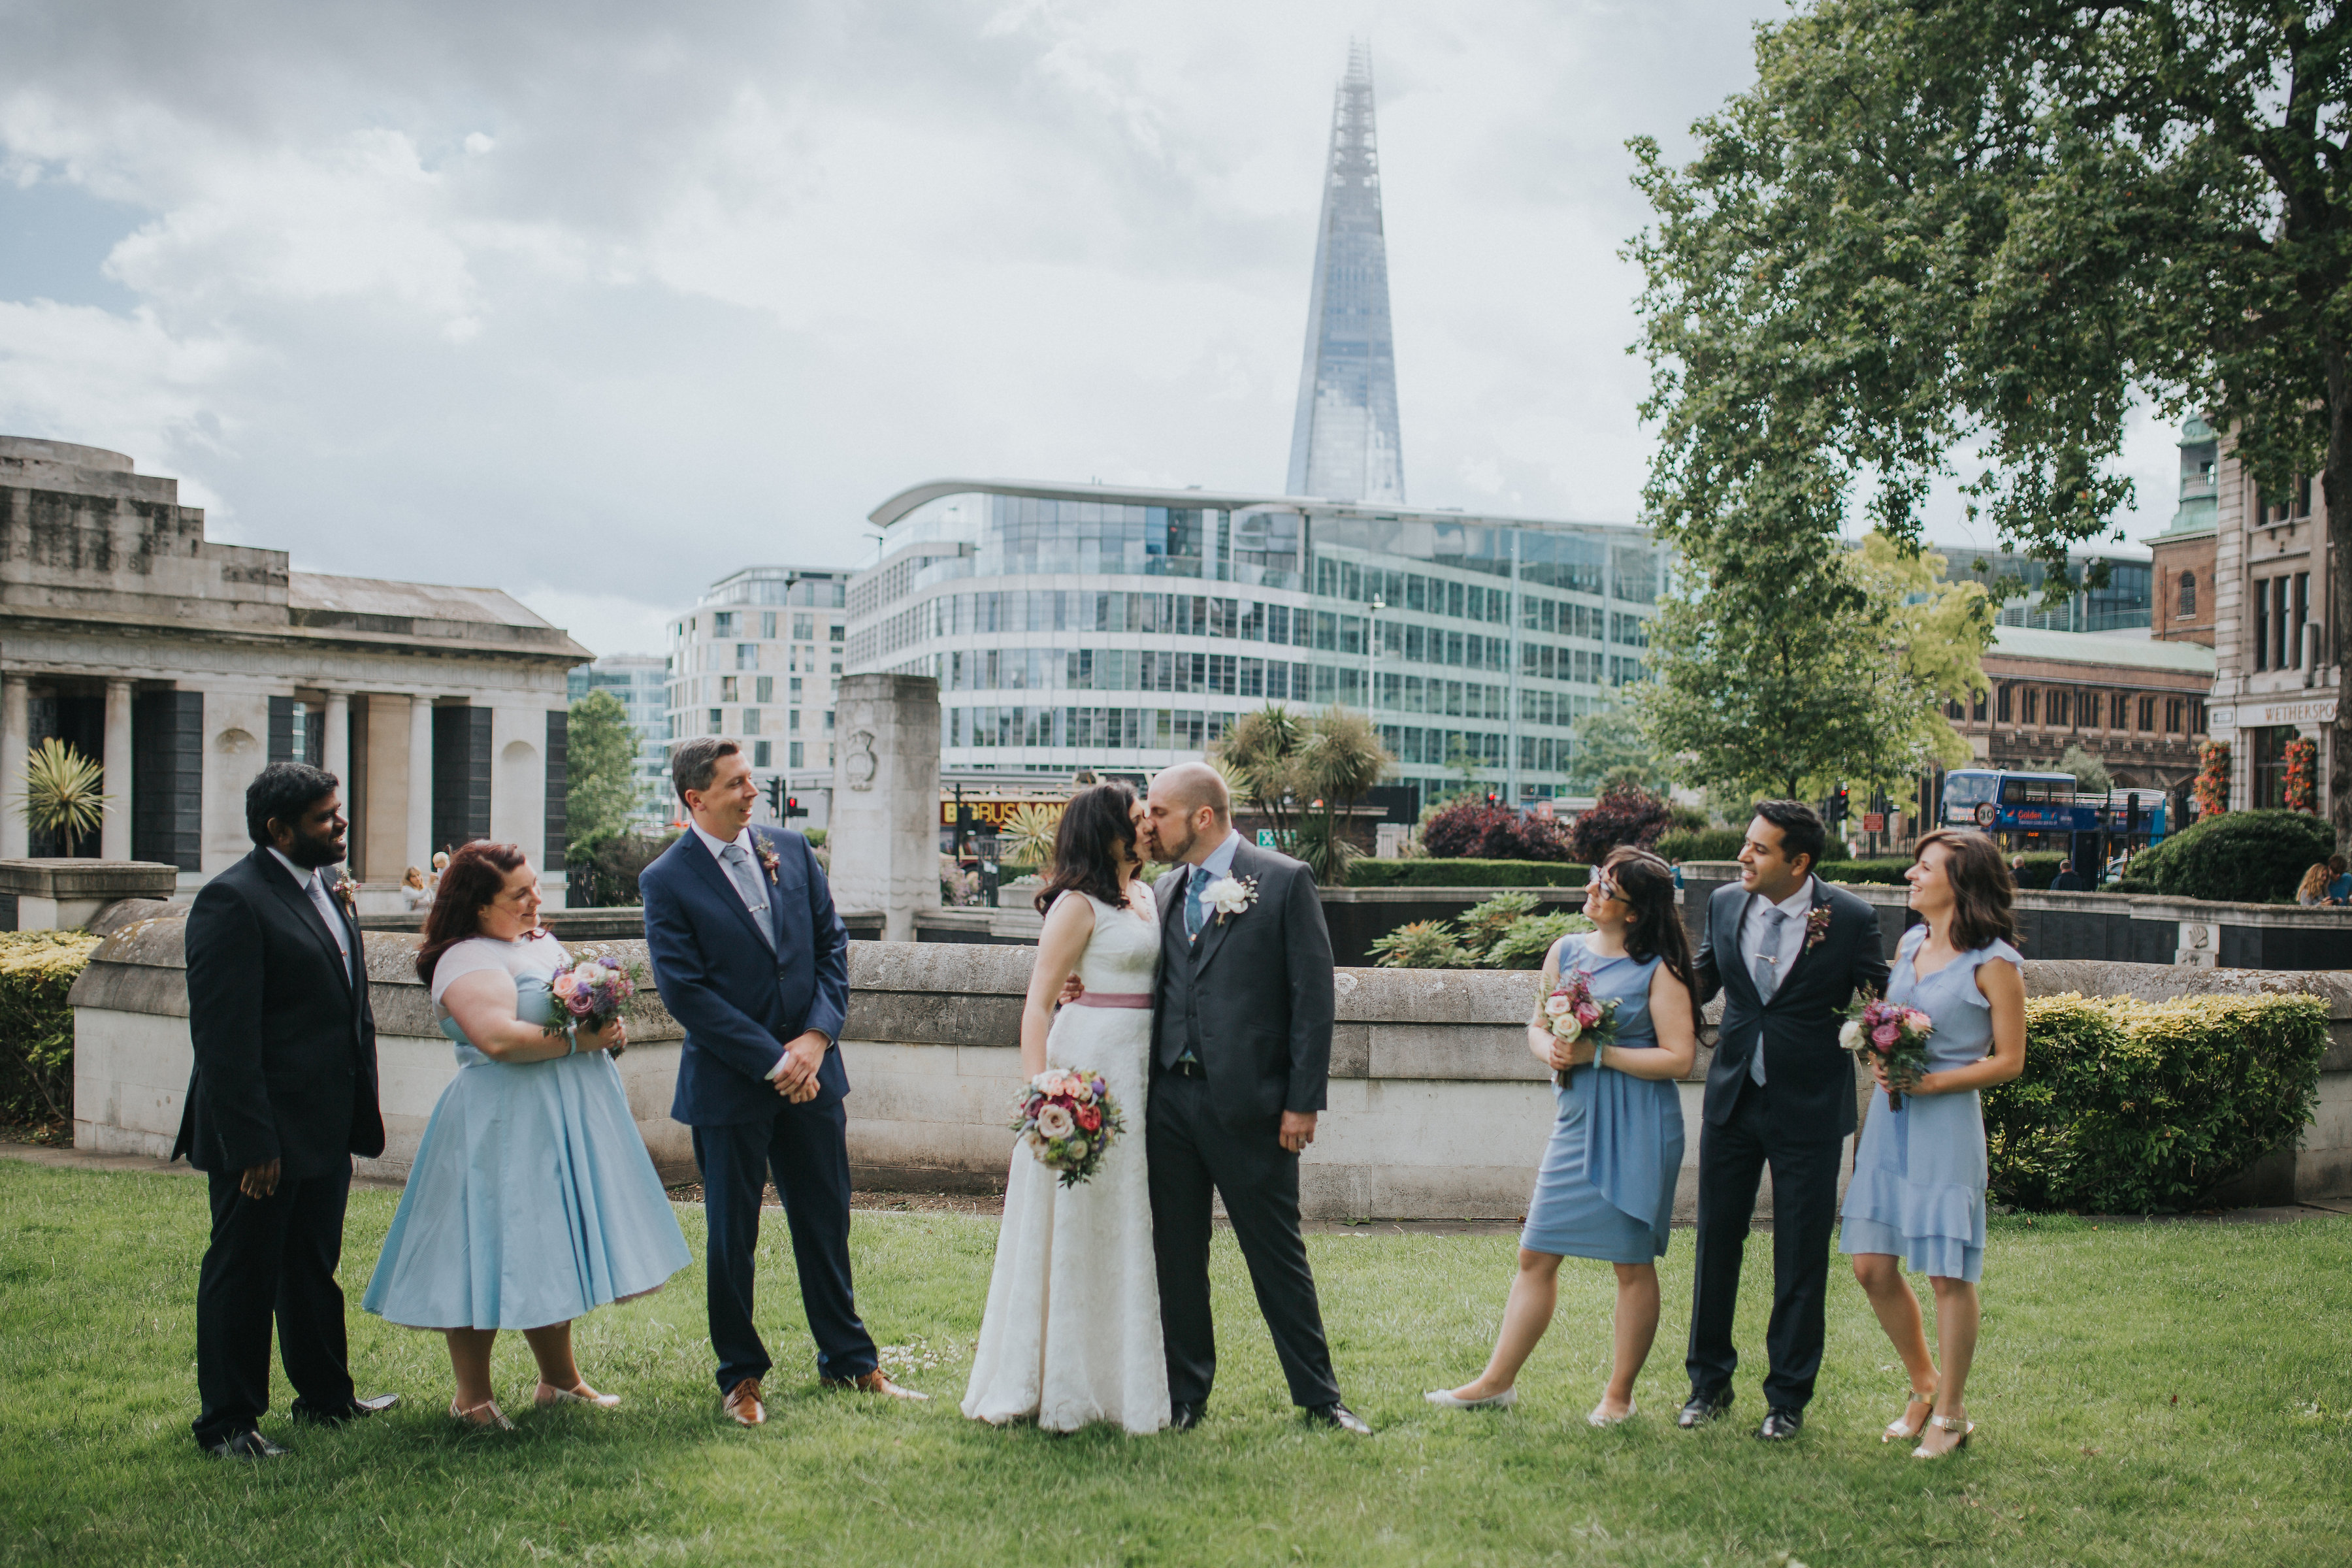 trinity house wedding, london wedding